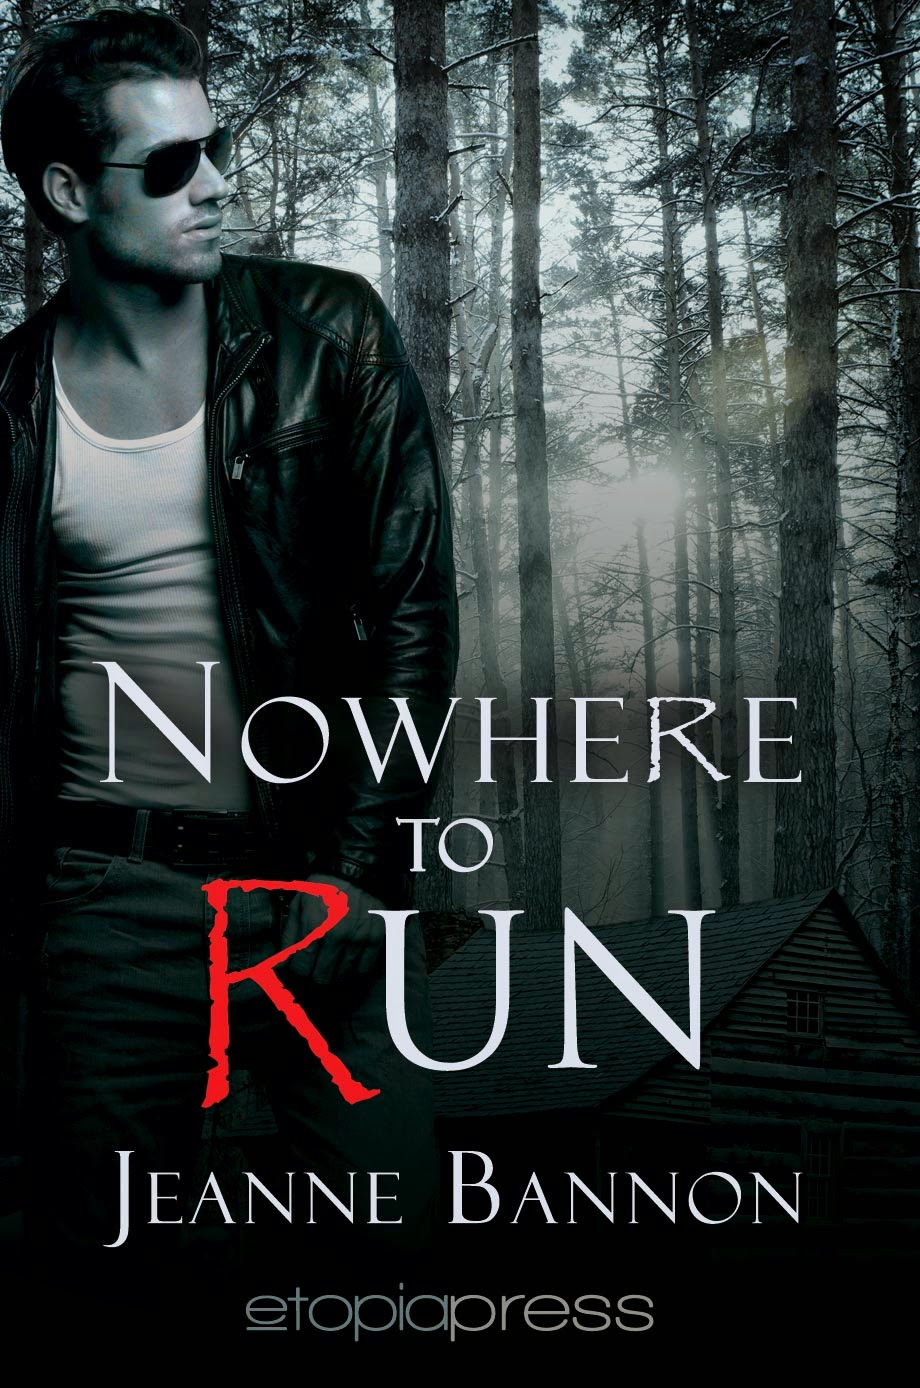 Book excerpt for romantic thriller Nowhere to Run by Jeanne Bannon